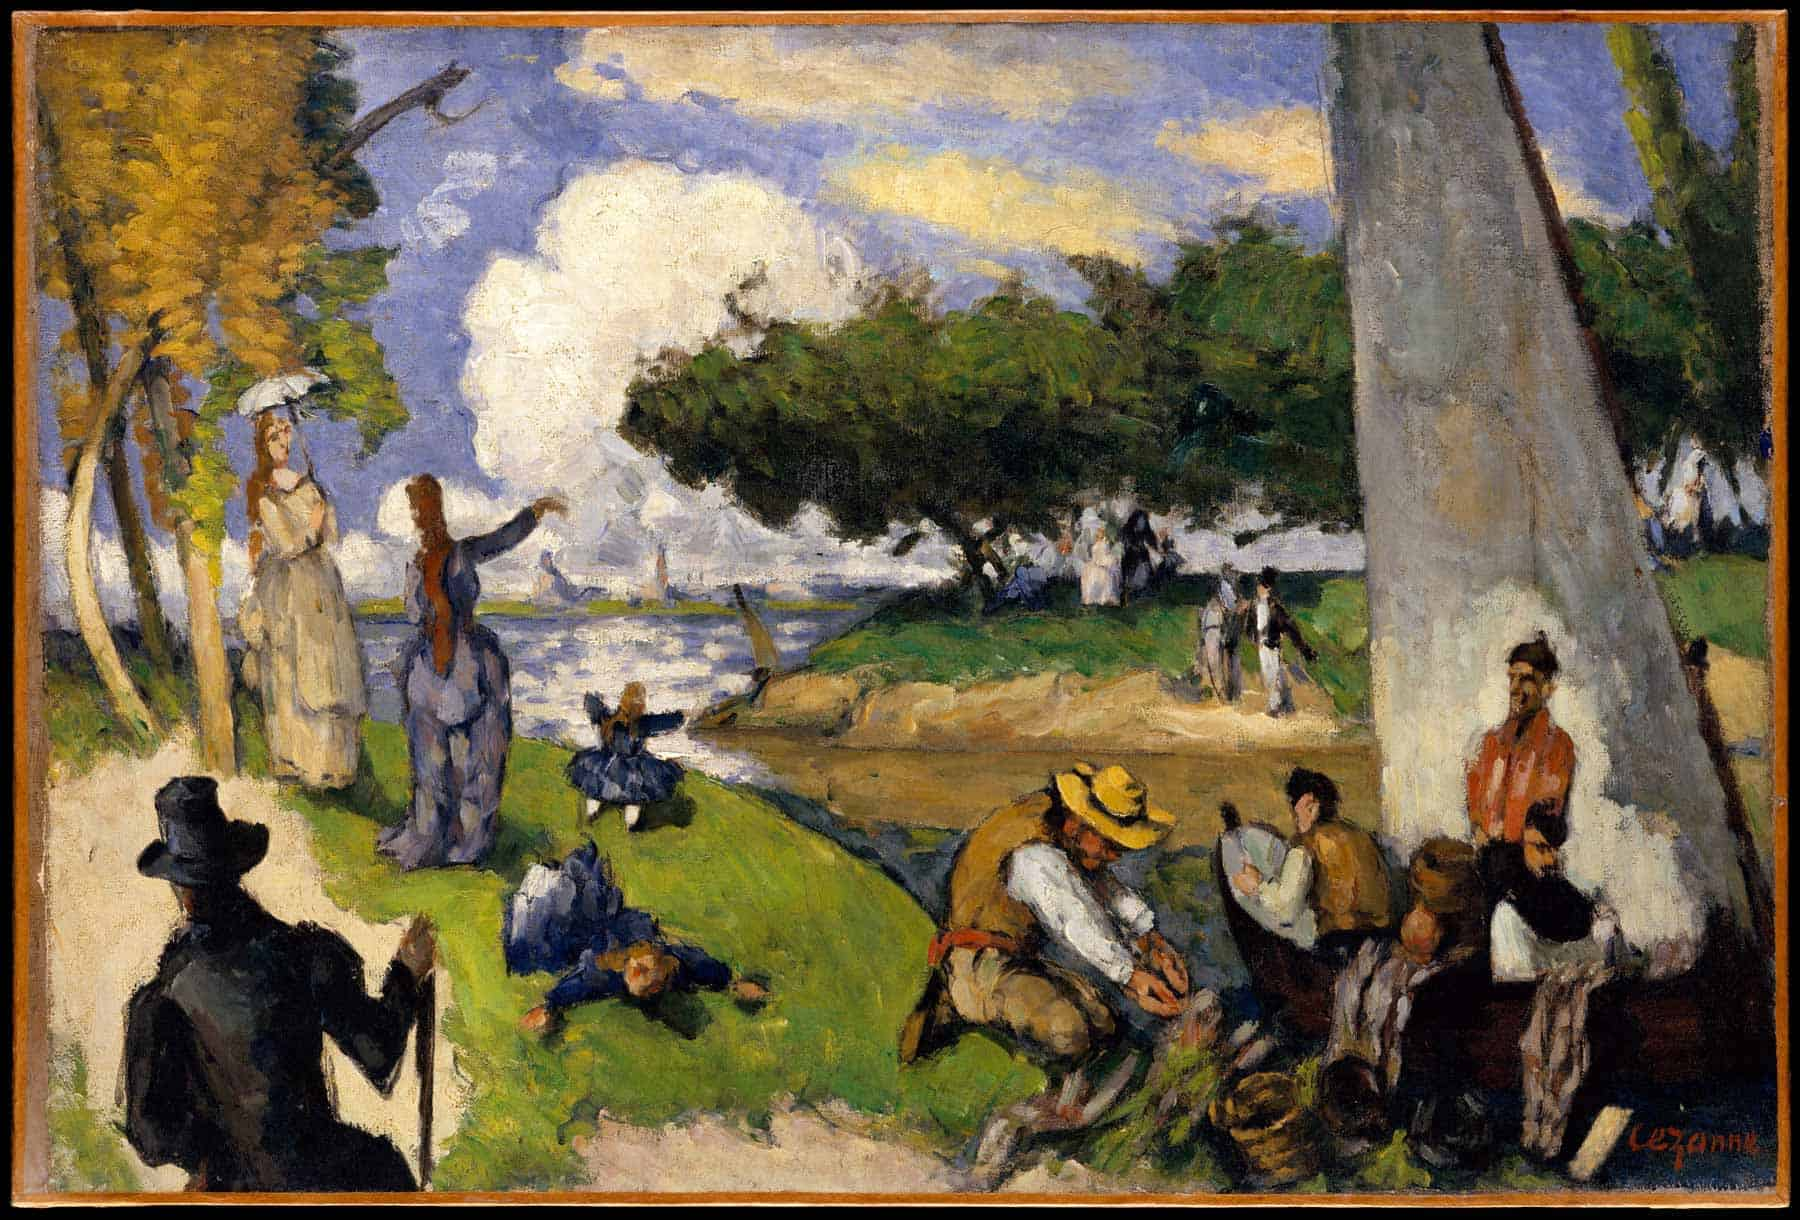 Painting by Paul Cezanne, free download from the Met Museum